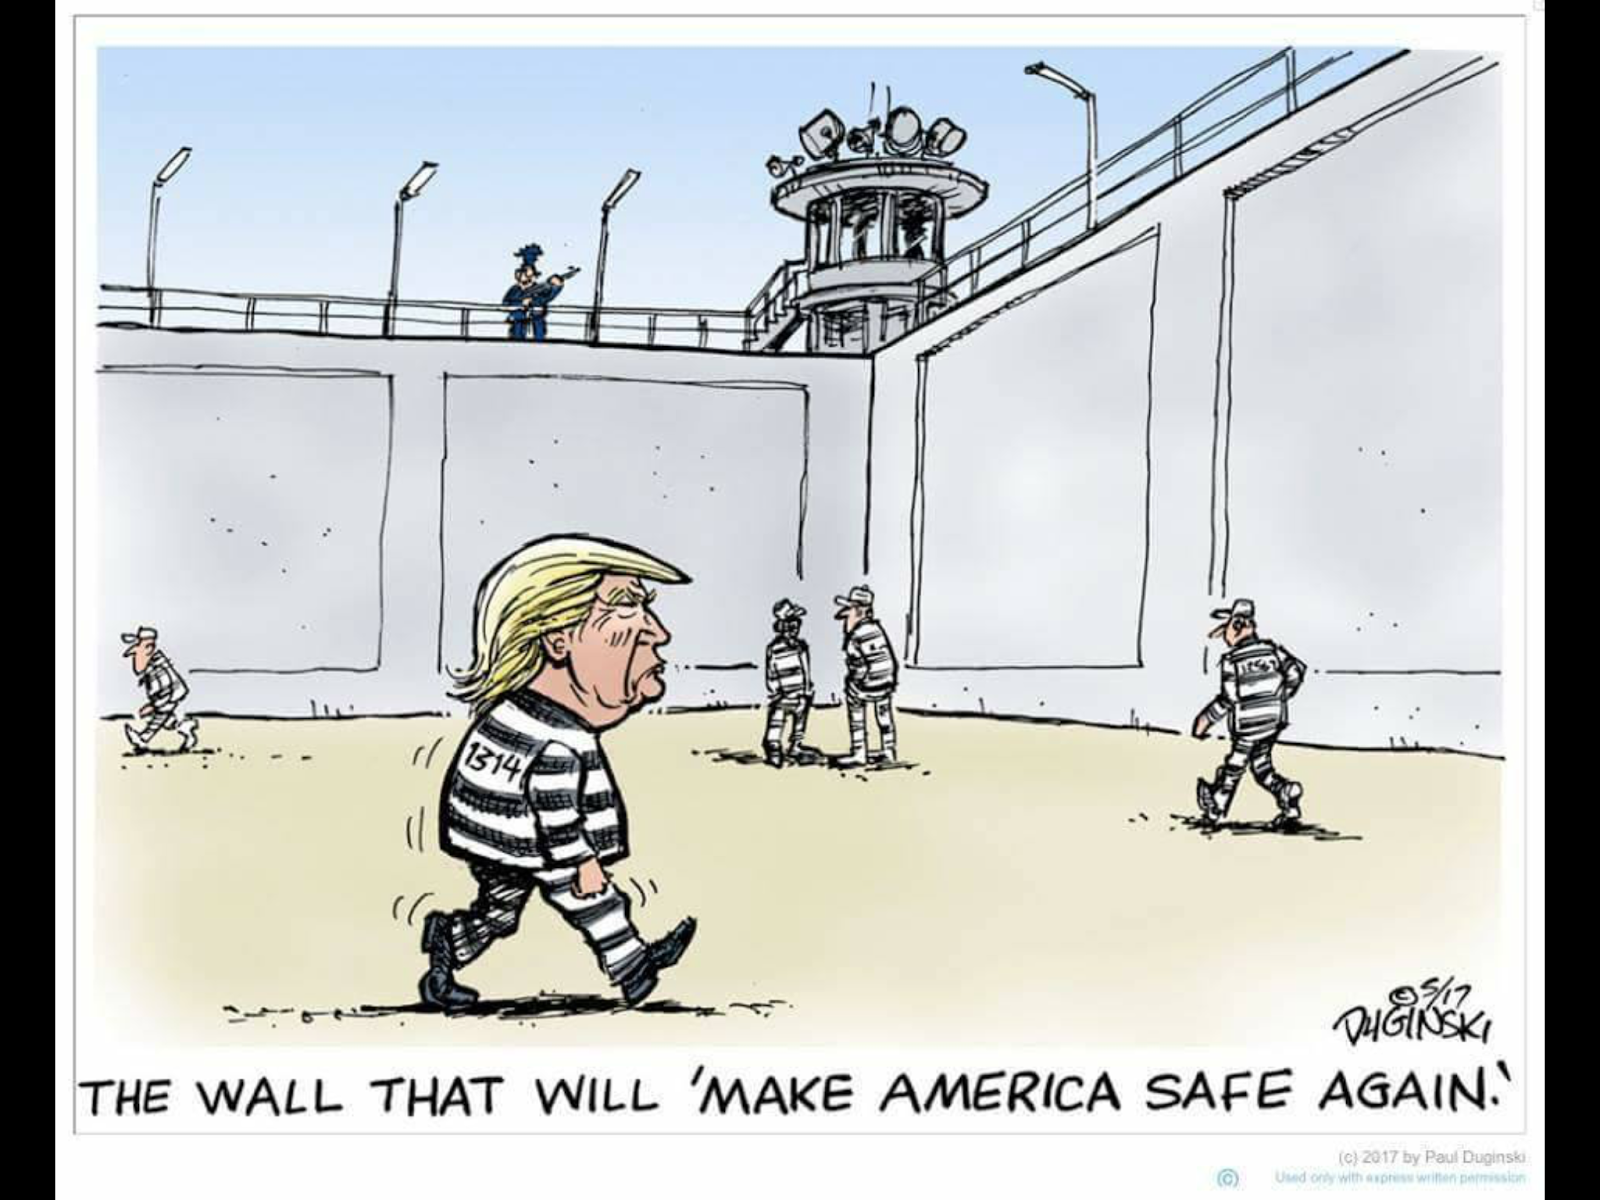 A WALL I WOULD FUND!